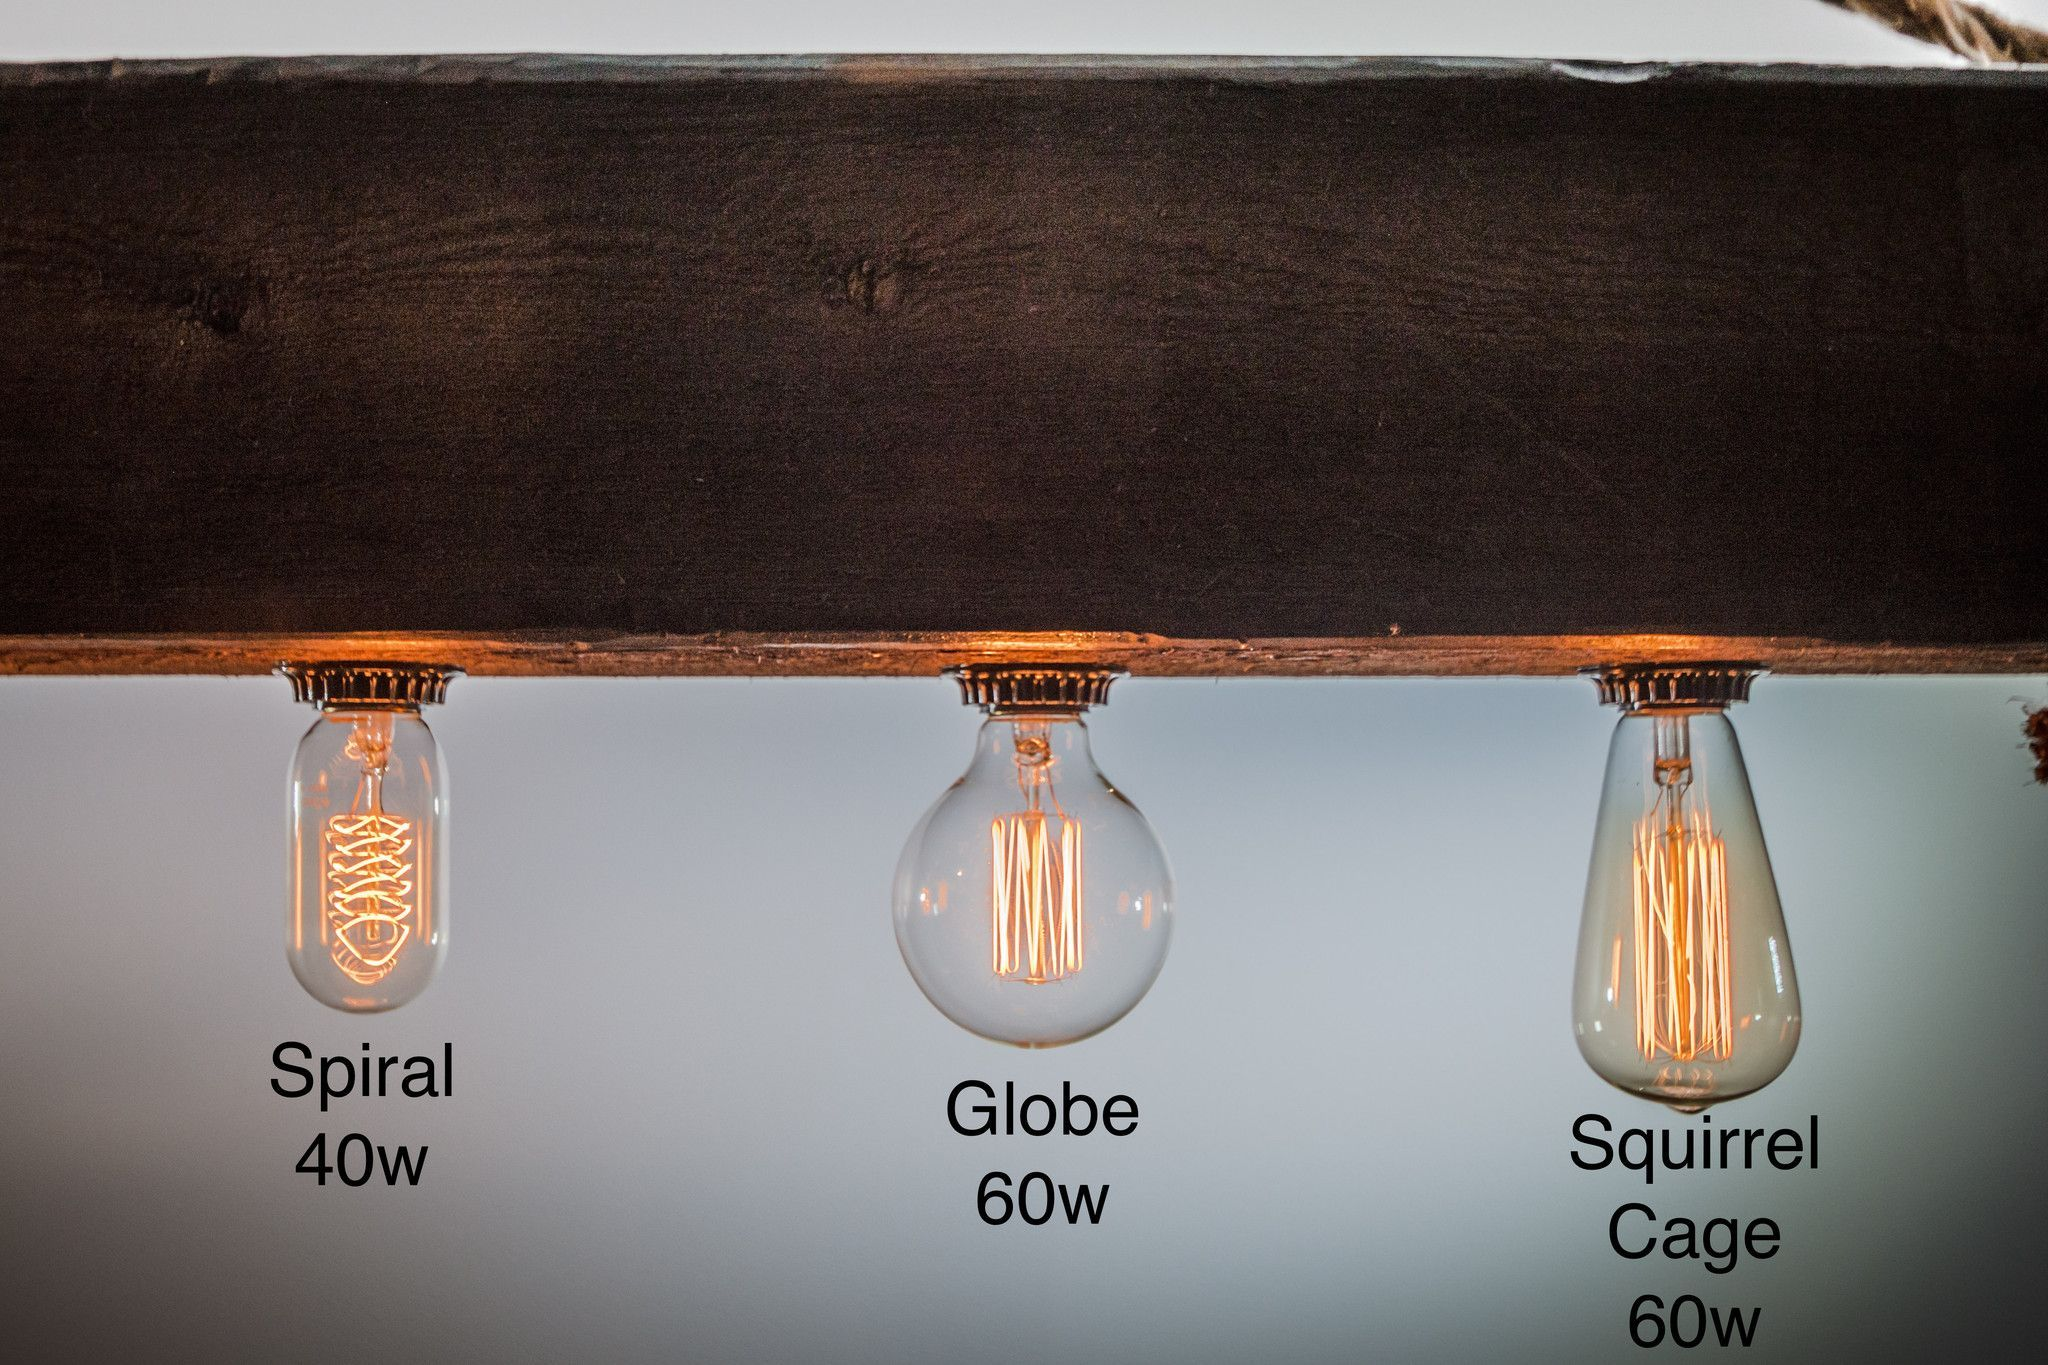 The Hangman Wall Sconce In 2018 Products Lmparas Wiring A Light Into Loop This Rustic Includes Dimmable Edison Bulb Hung Below Protruding 4x4 Beam Exposed Cloth Covered Rope Wire Loops Over